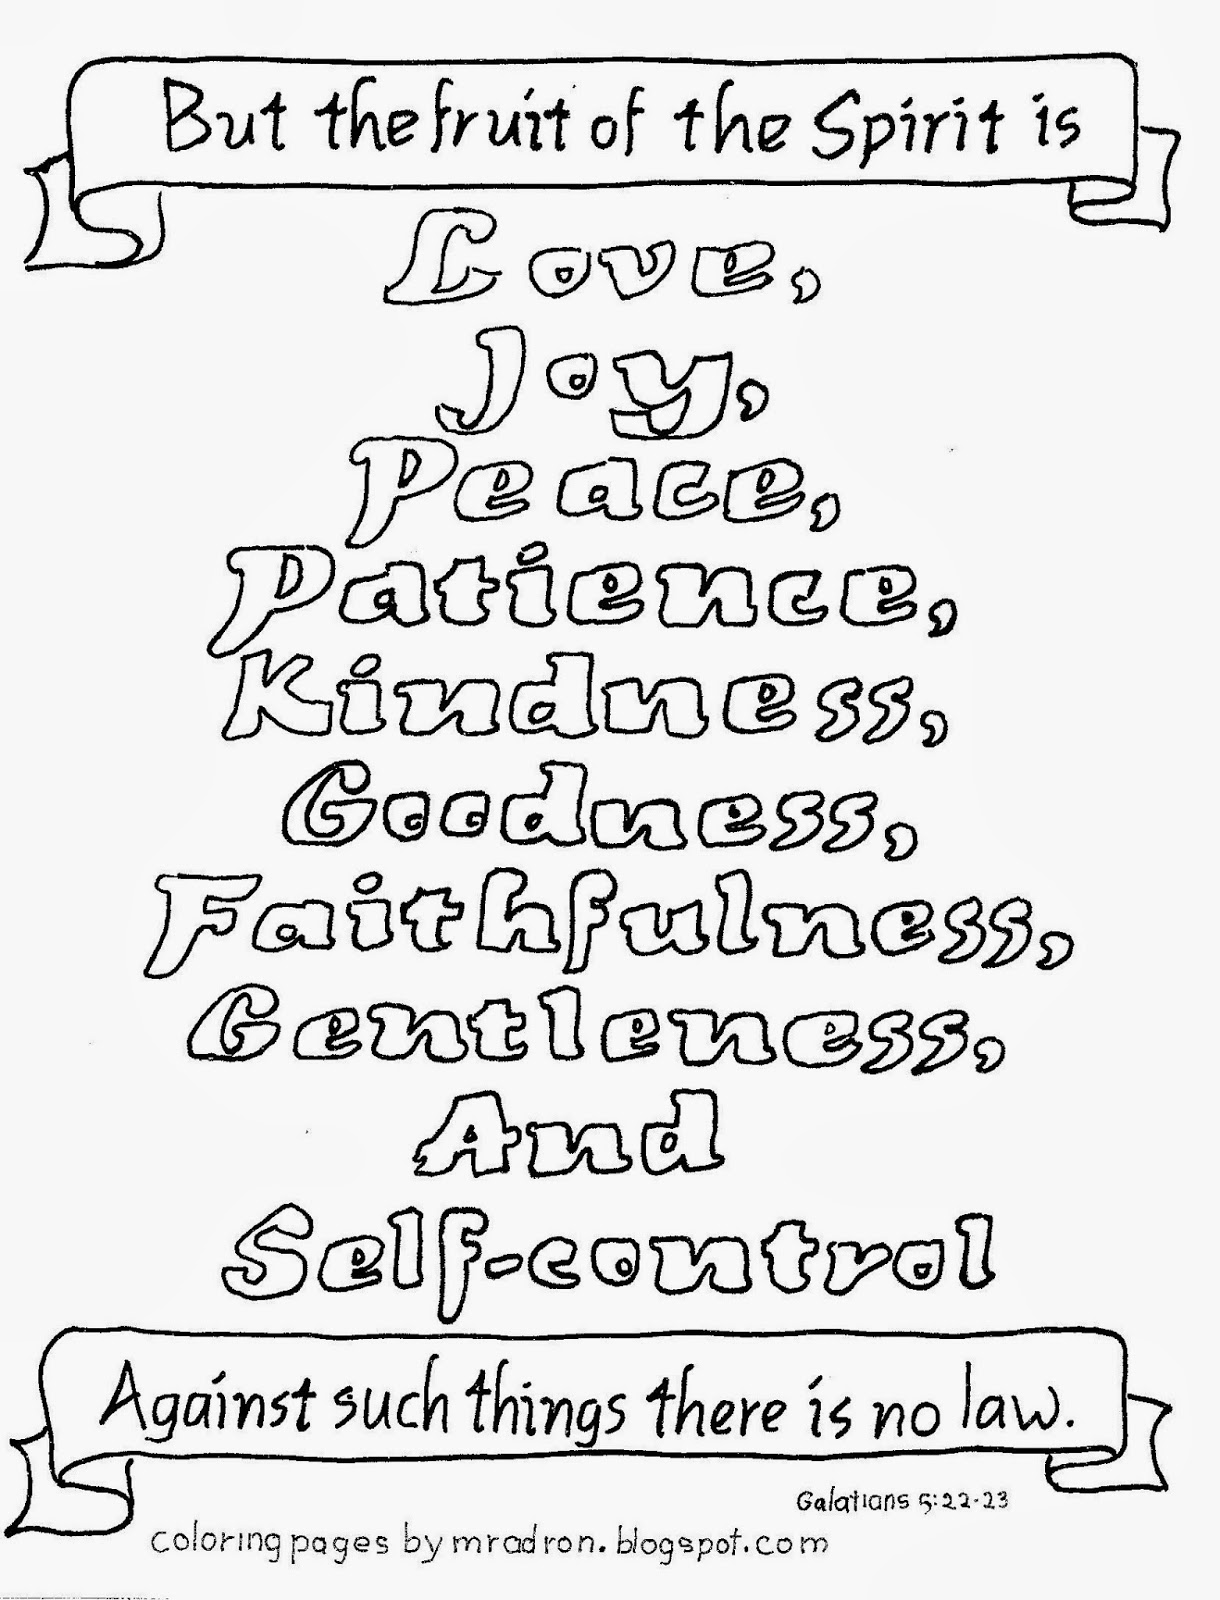 An illustration of Galatians 6:22-23 to print and color.